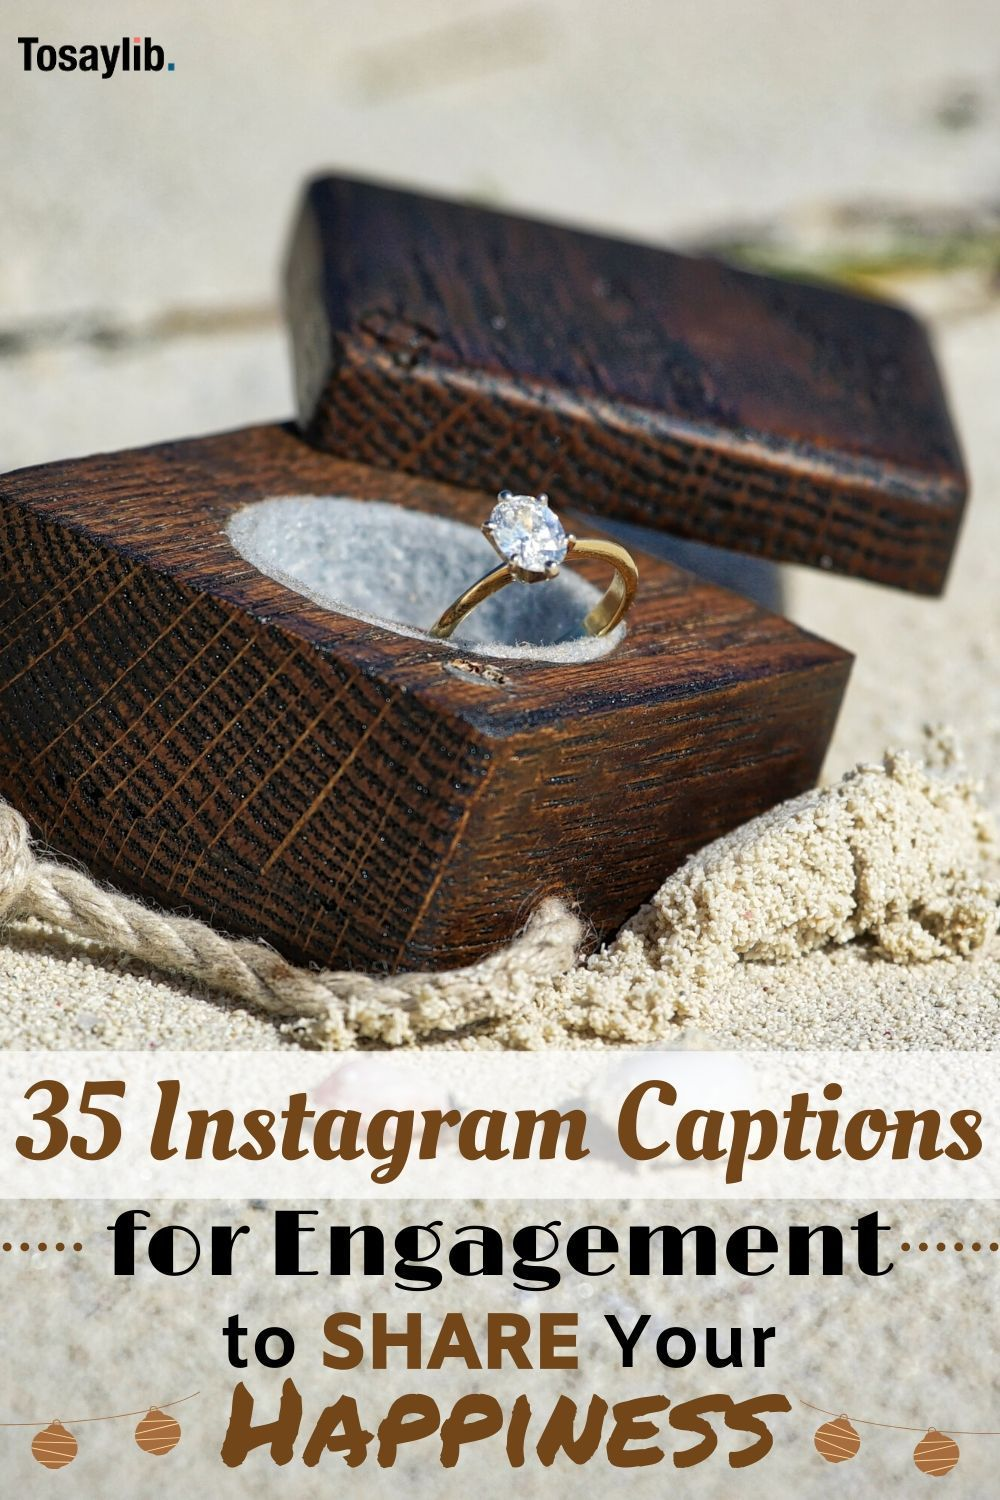 35 Instagram Captions for Engagement to Share Your ...